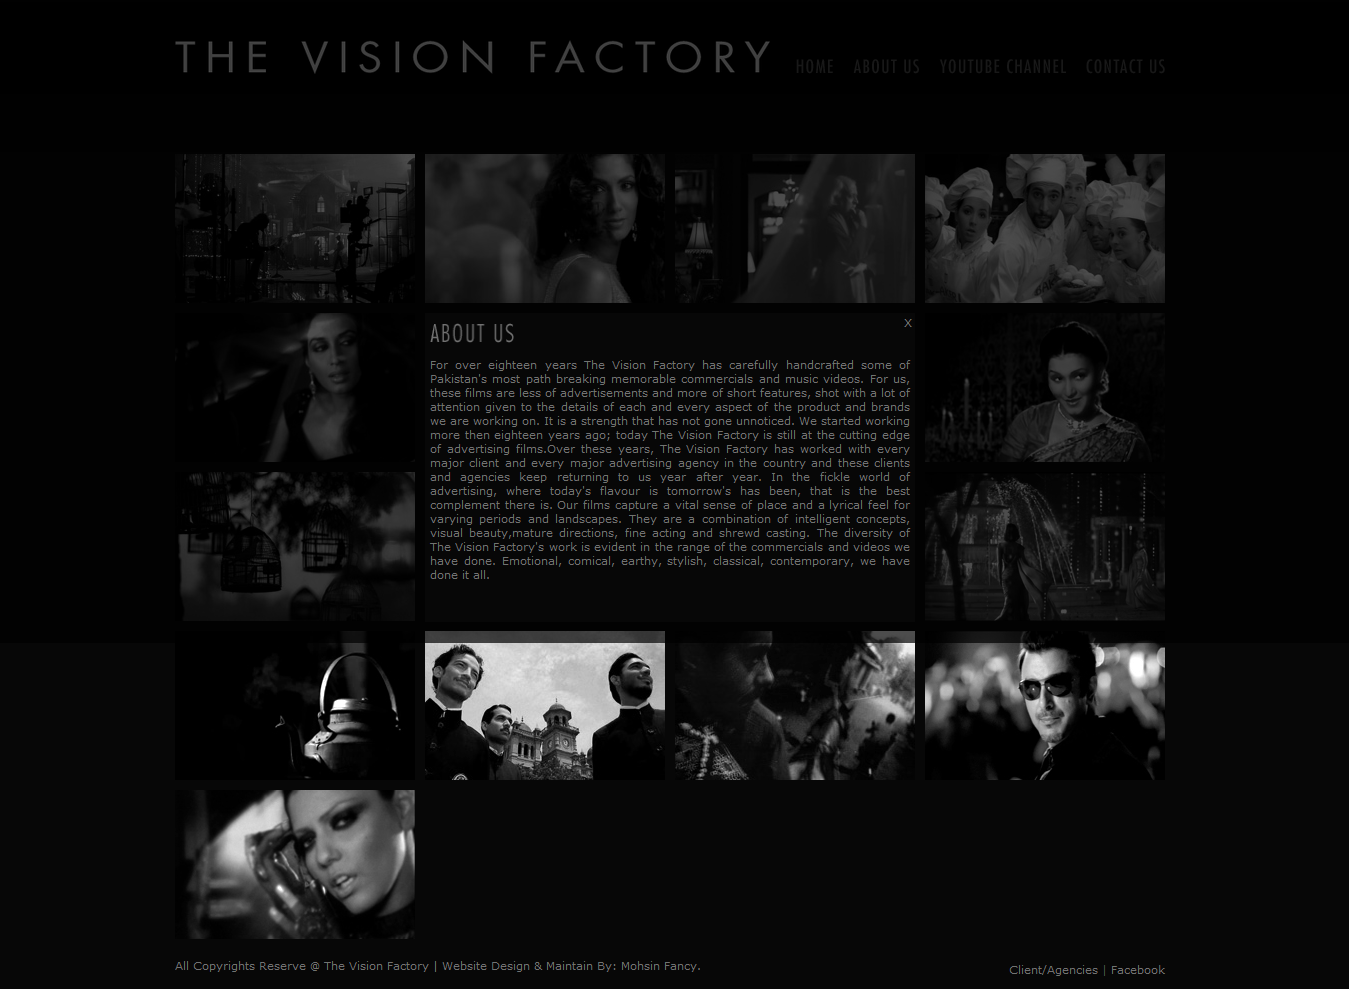 Asim Raza The Vision Factory About Us Page